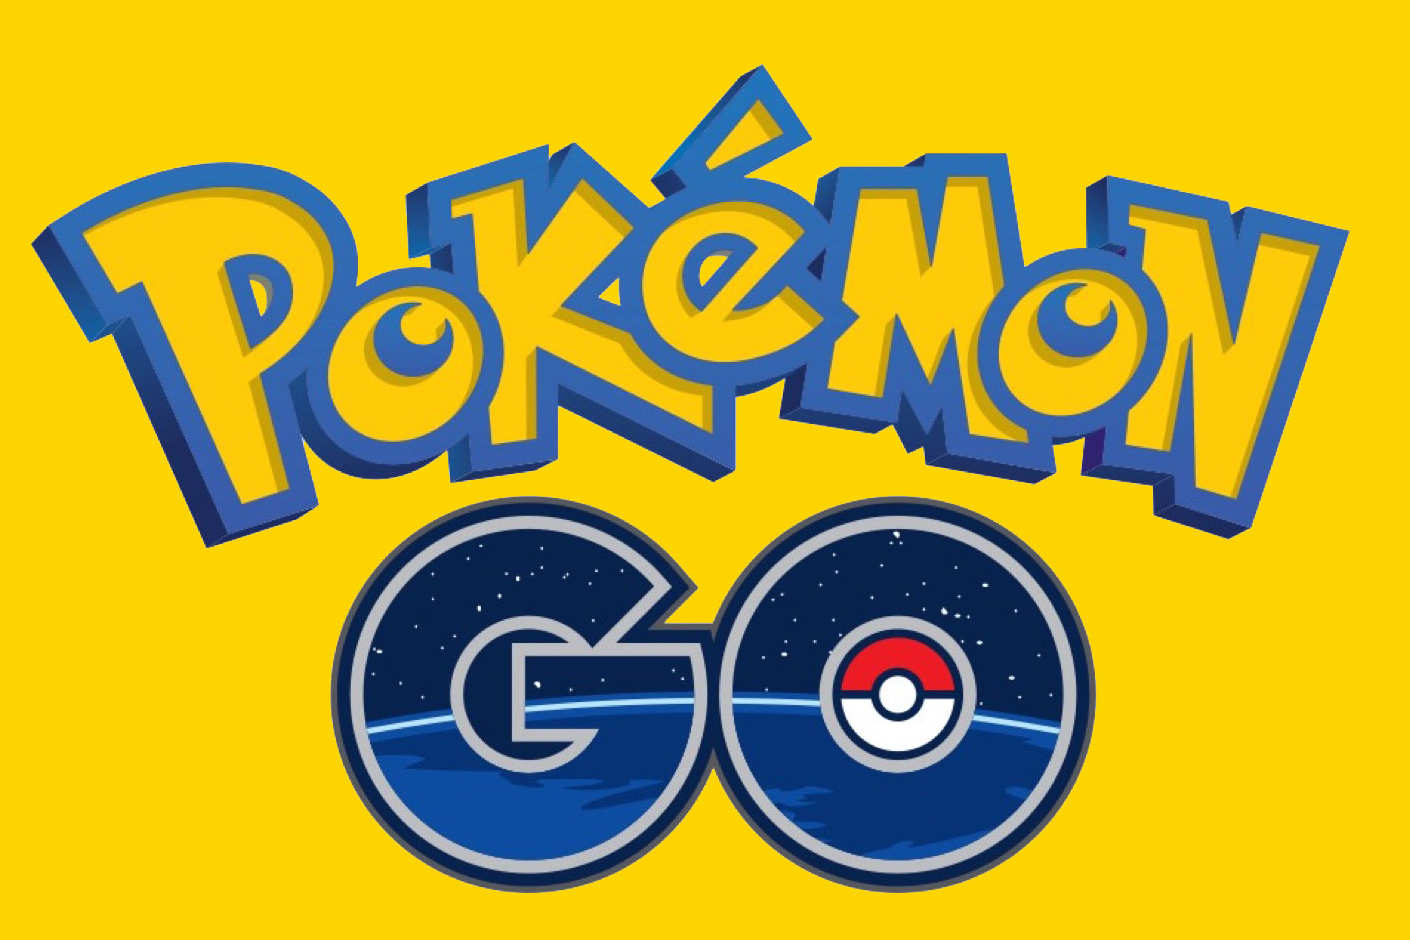 US: Pokemon Go Is Once Again The Highest Grossing Game On App Store